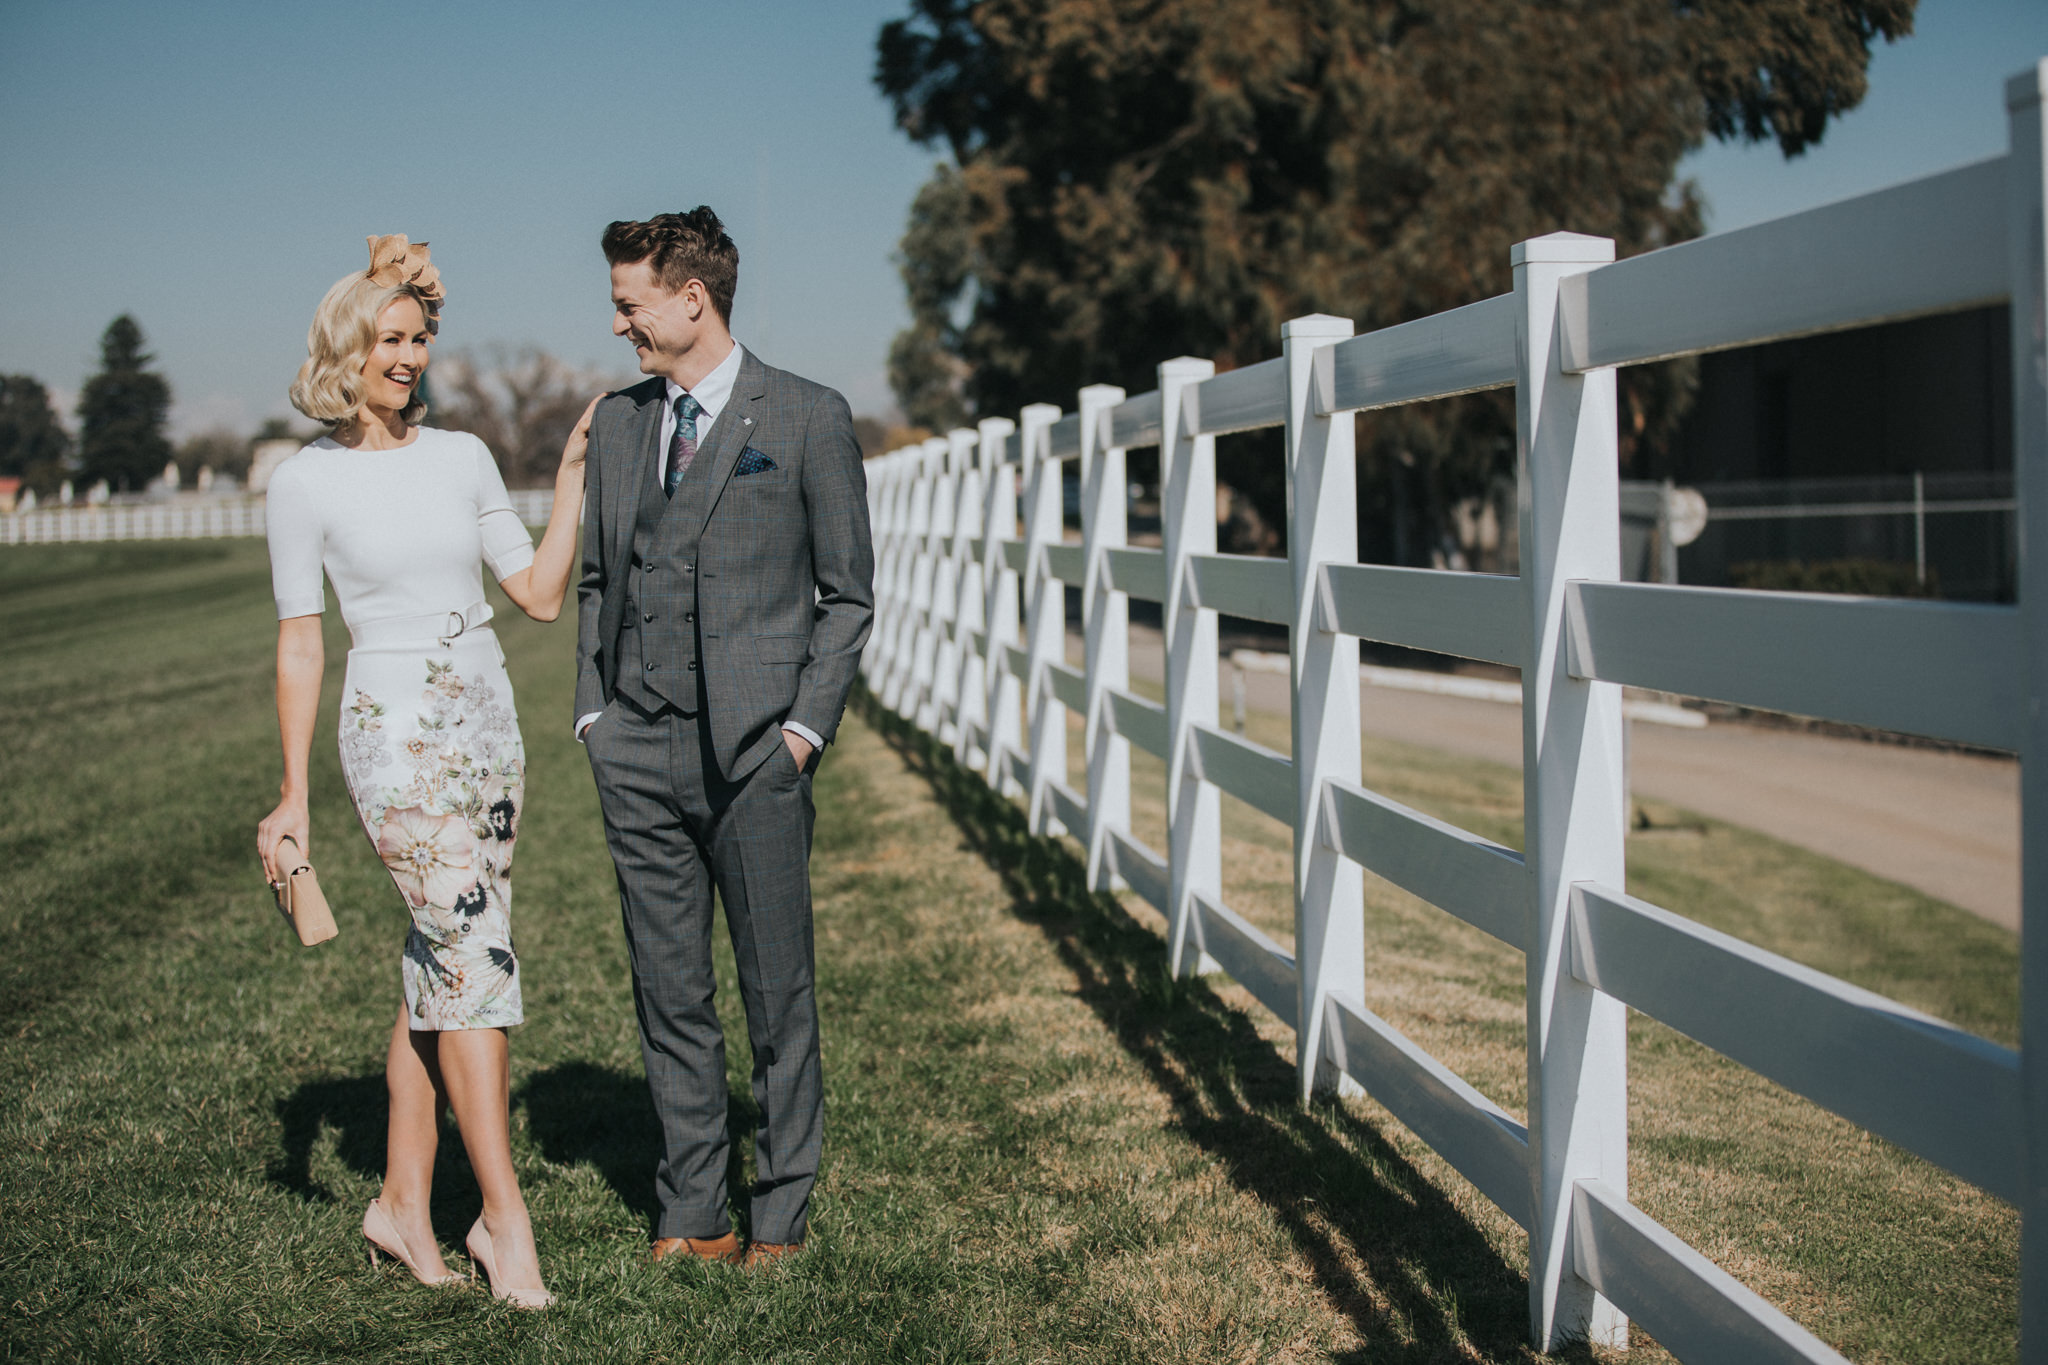 spring racing photoshoot - on the racecourse